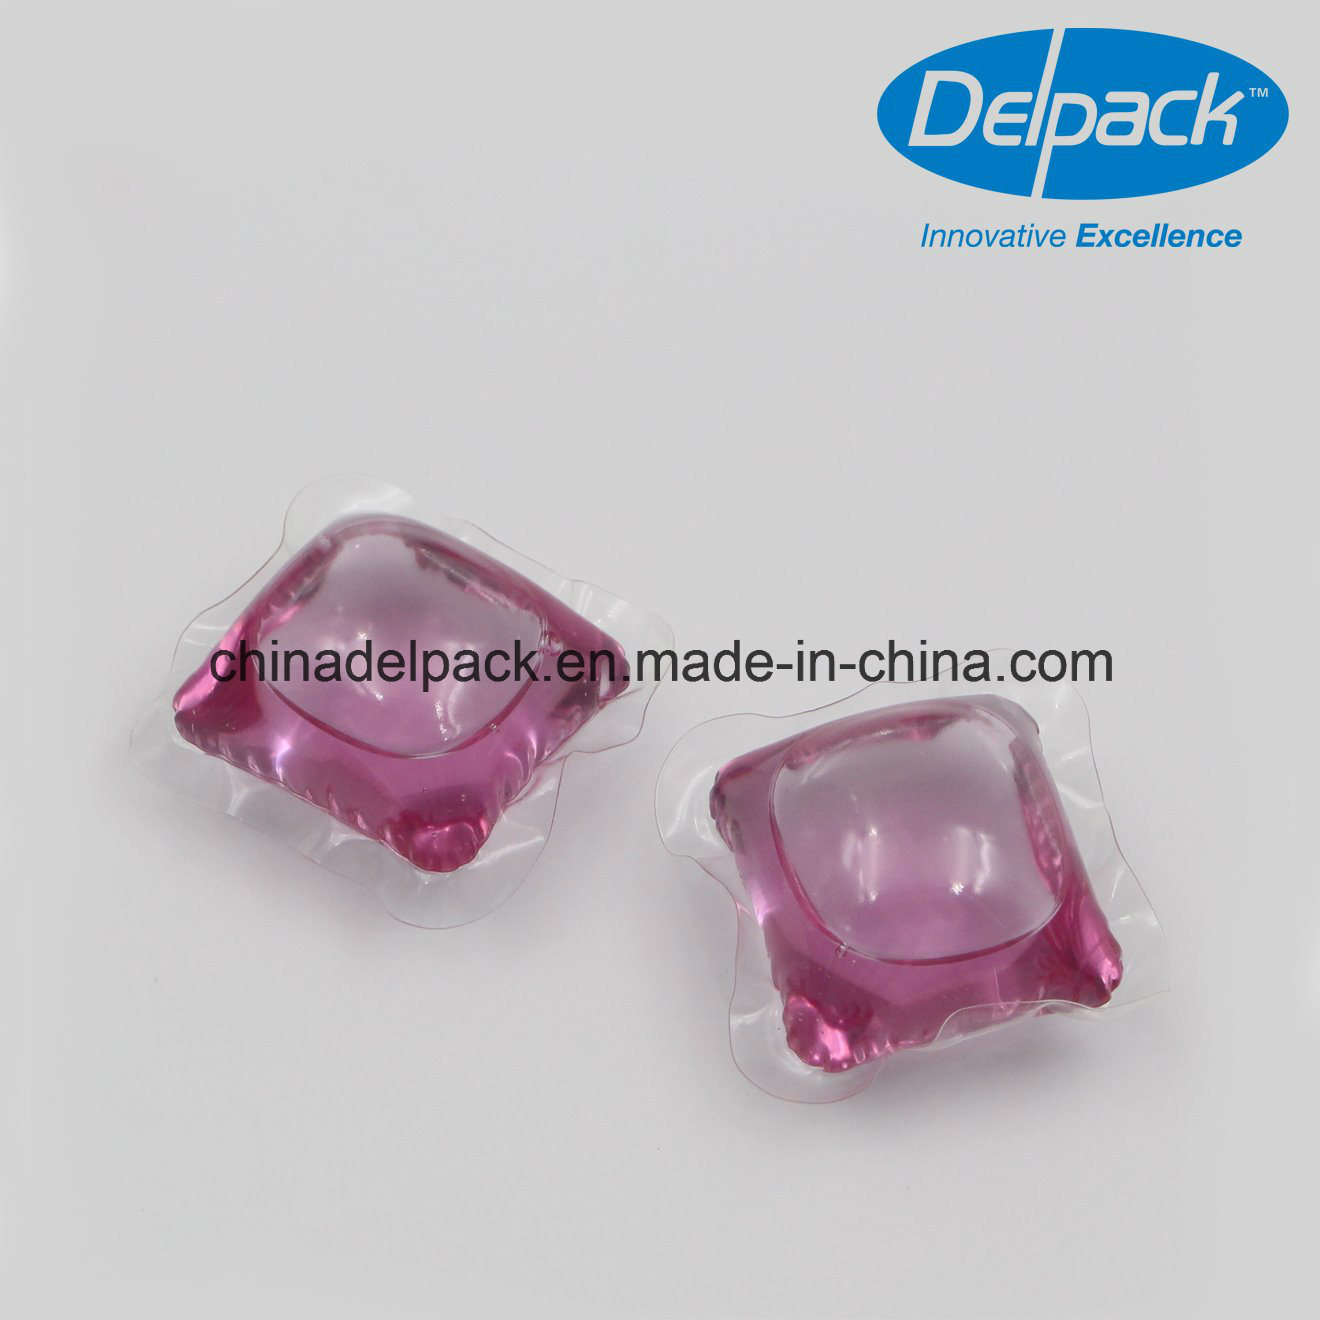 OEM&ODM 15g with Purple Dyes Laundry Washing Detergent Pod, Concentrated Laundry Liquid Detergent Capsule